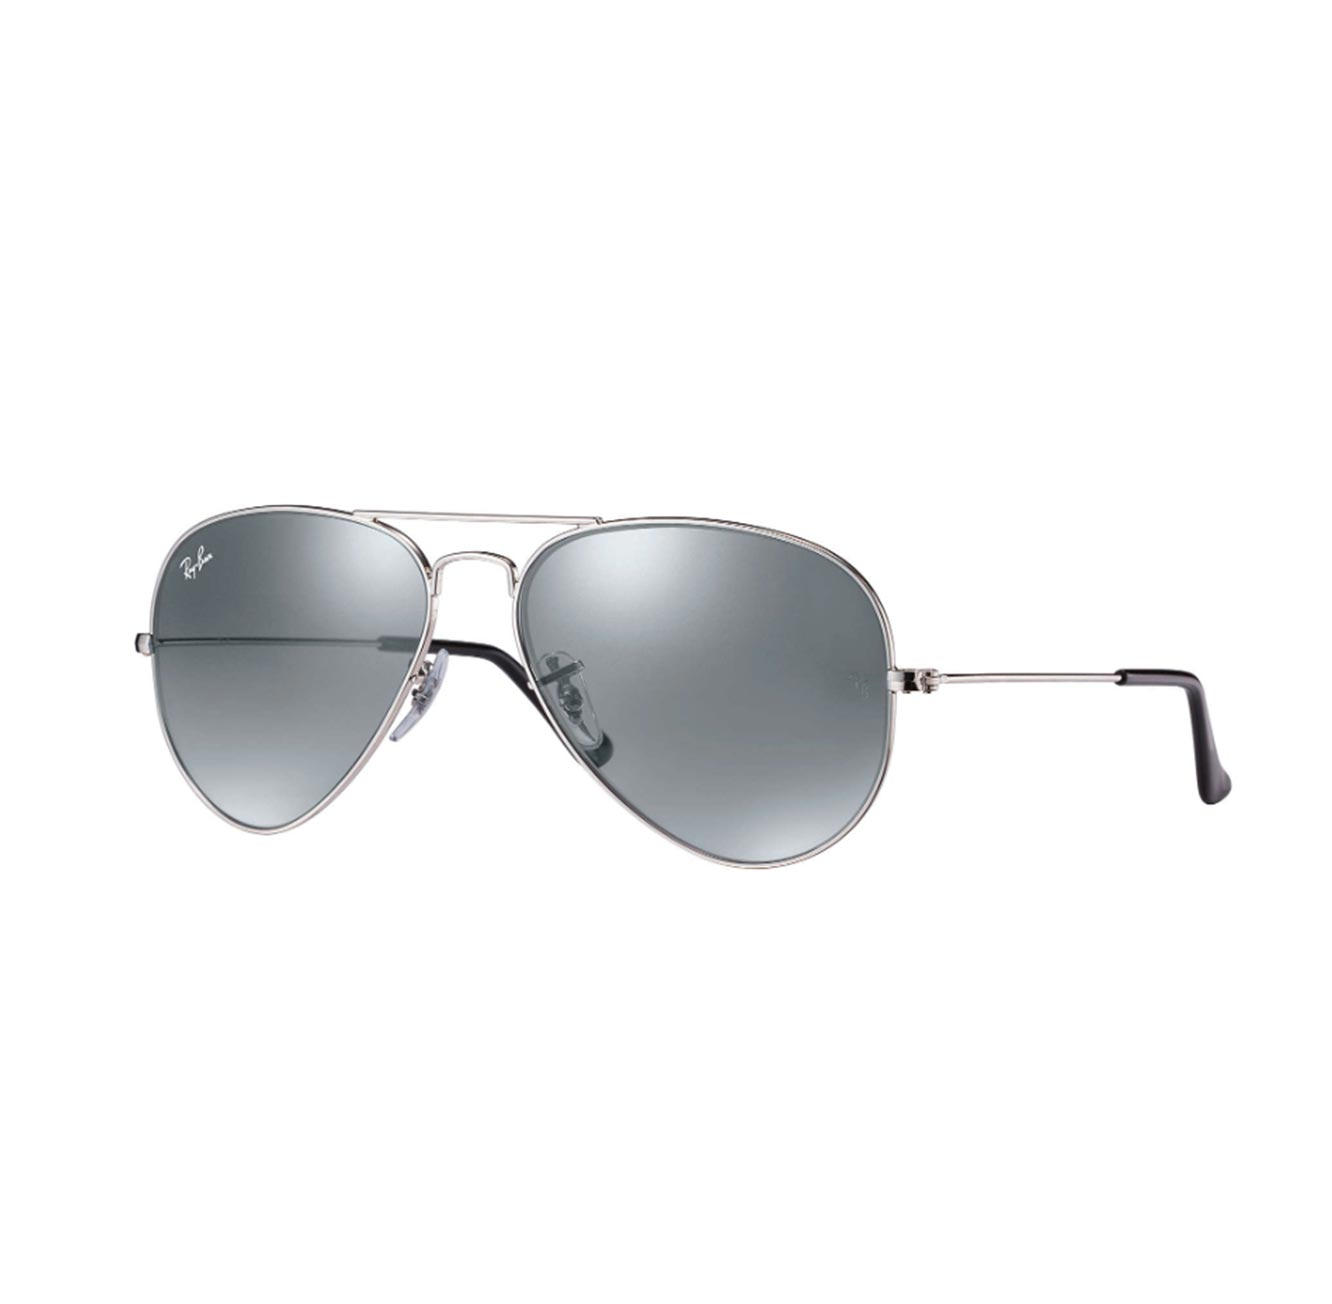 משקפי RAY BAN AVIATOR LARGE METAL דגם RB3023 003 32 יוניסקס